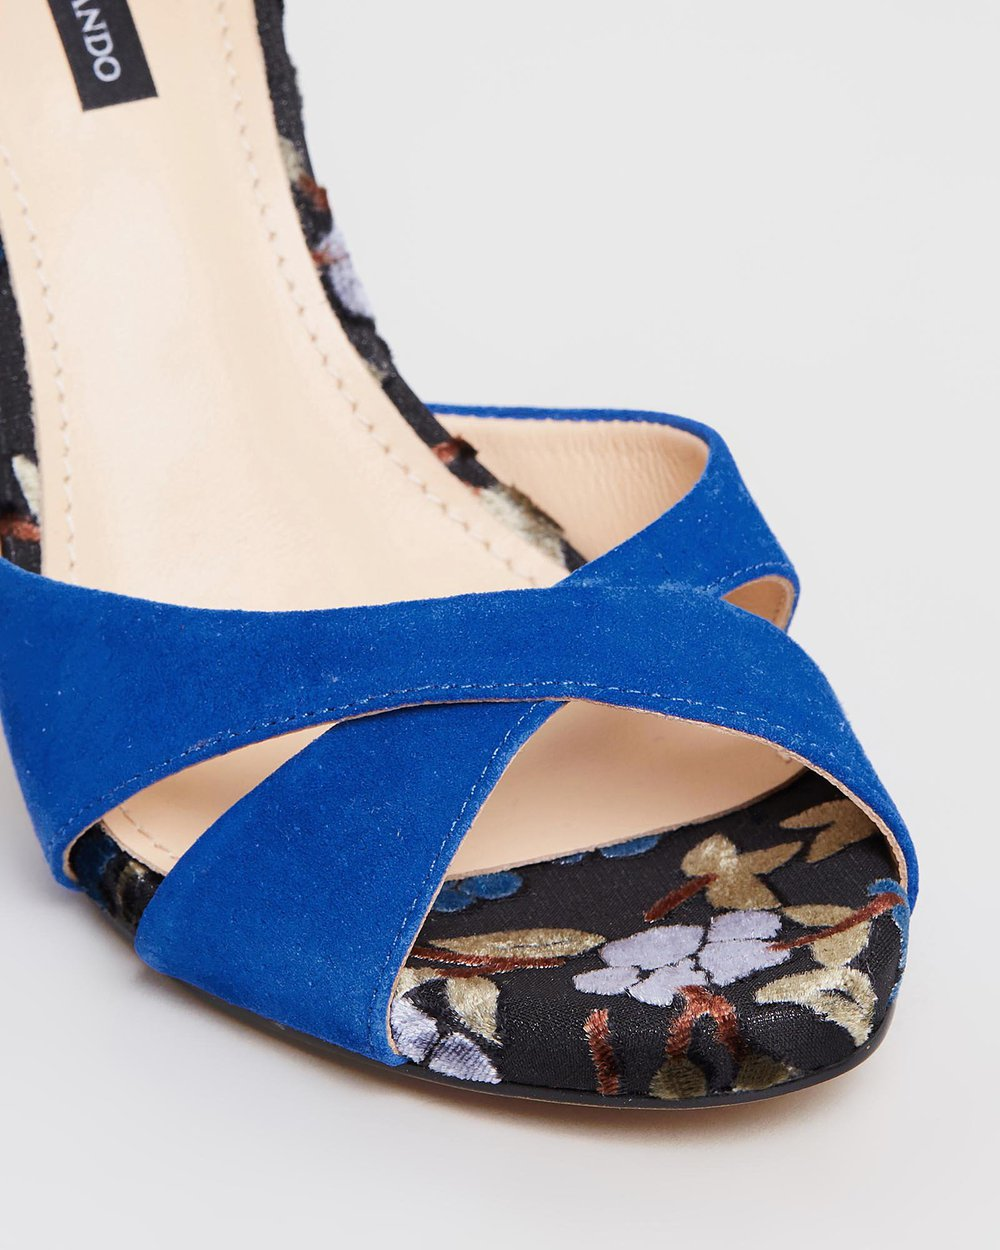 Mara - Blue with Floral Heel